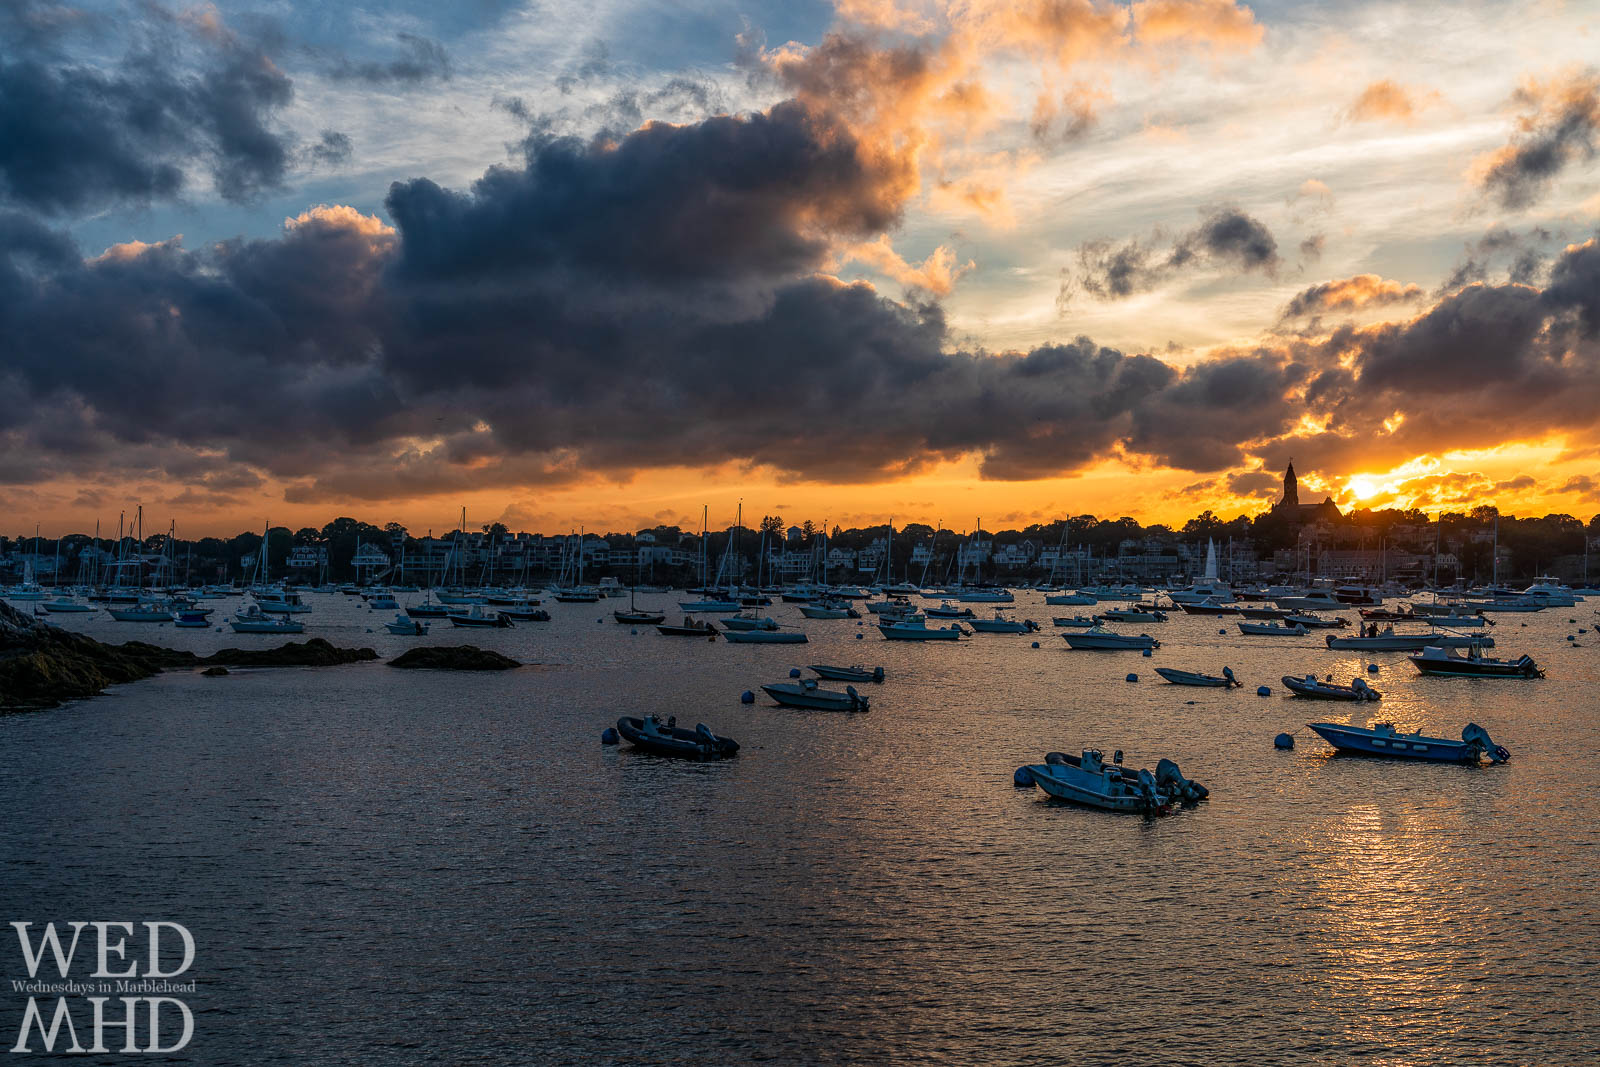 Just another Marblehead sunset captured on an August evening with a nice mix of clouds in the sky and boats in the water